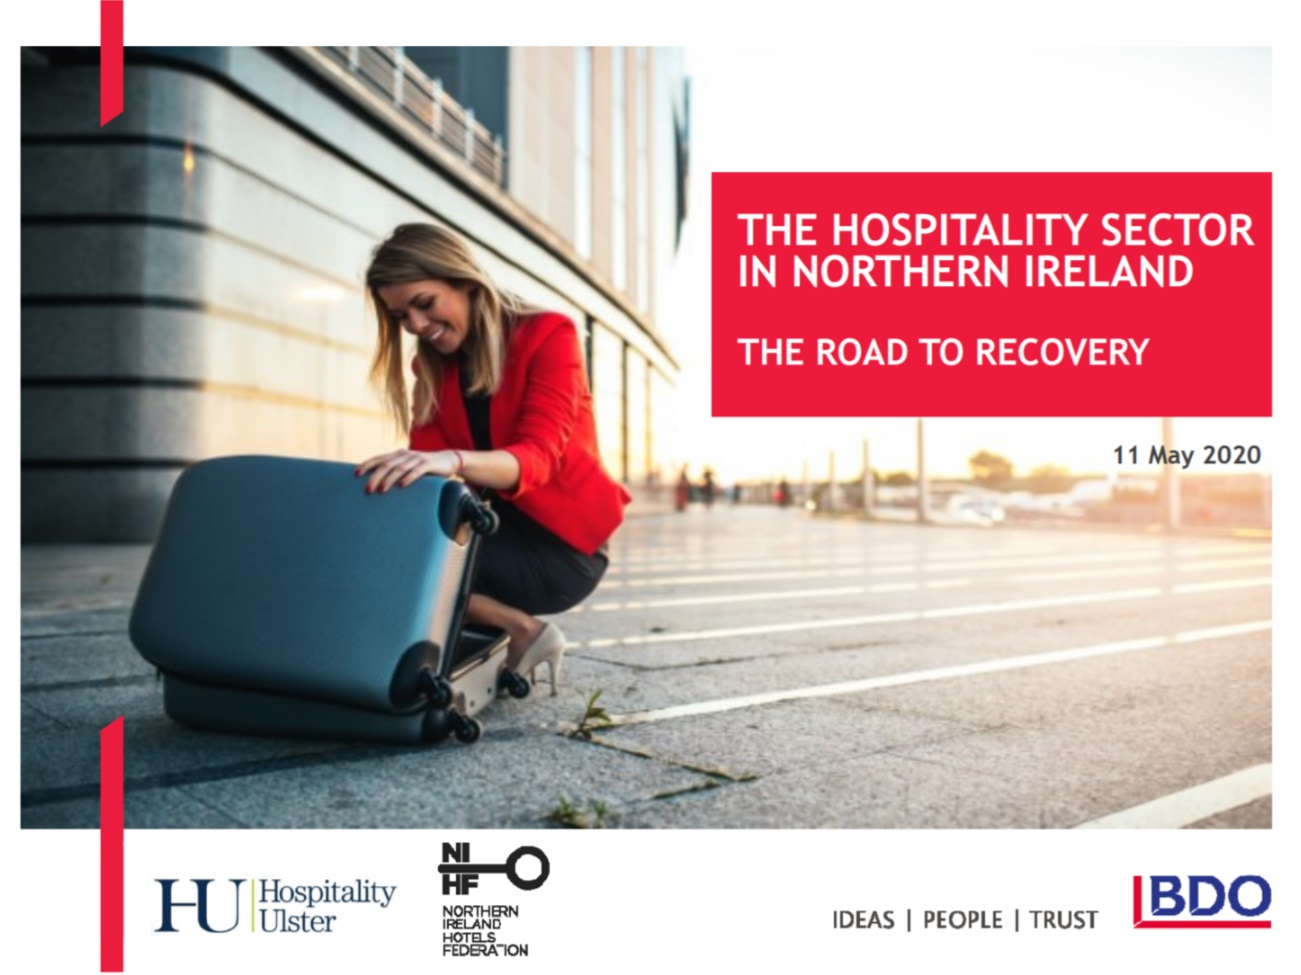 NI HOSPITALITY SECTOR SHOWS DESIRE TO REOPEN WITH 12 POINT ROAD TO RECOVERY PLAN